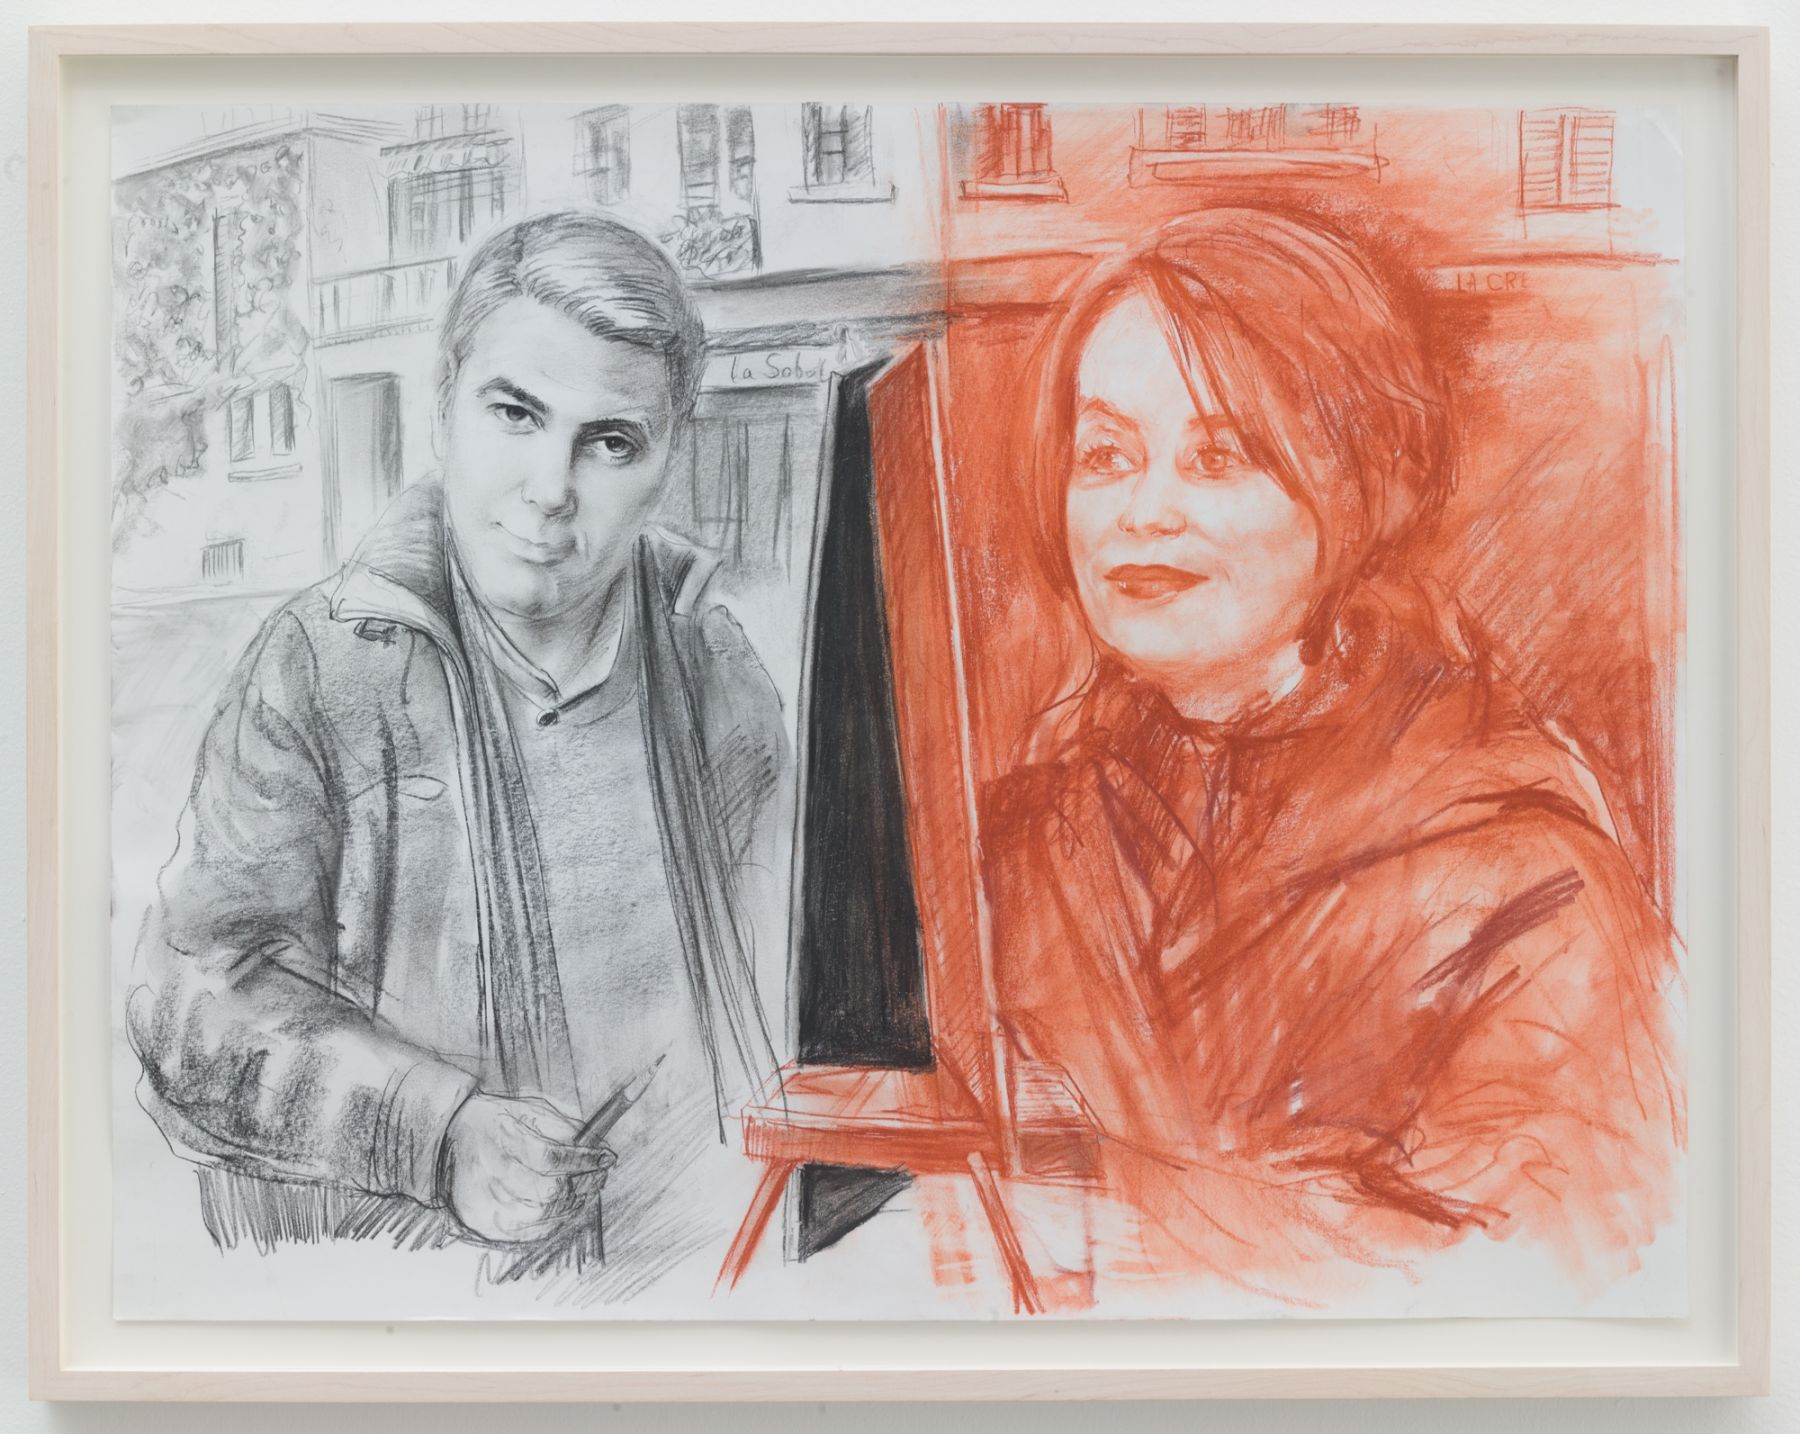 Christian Jankowski, Isabelle Huppert - George Clooney